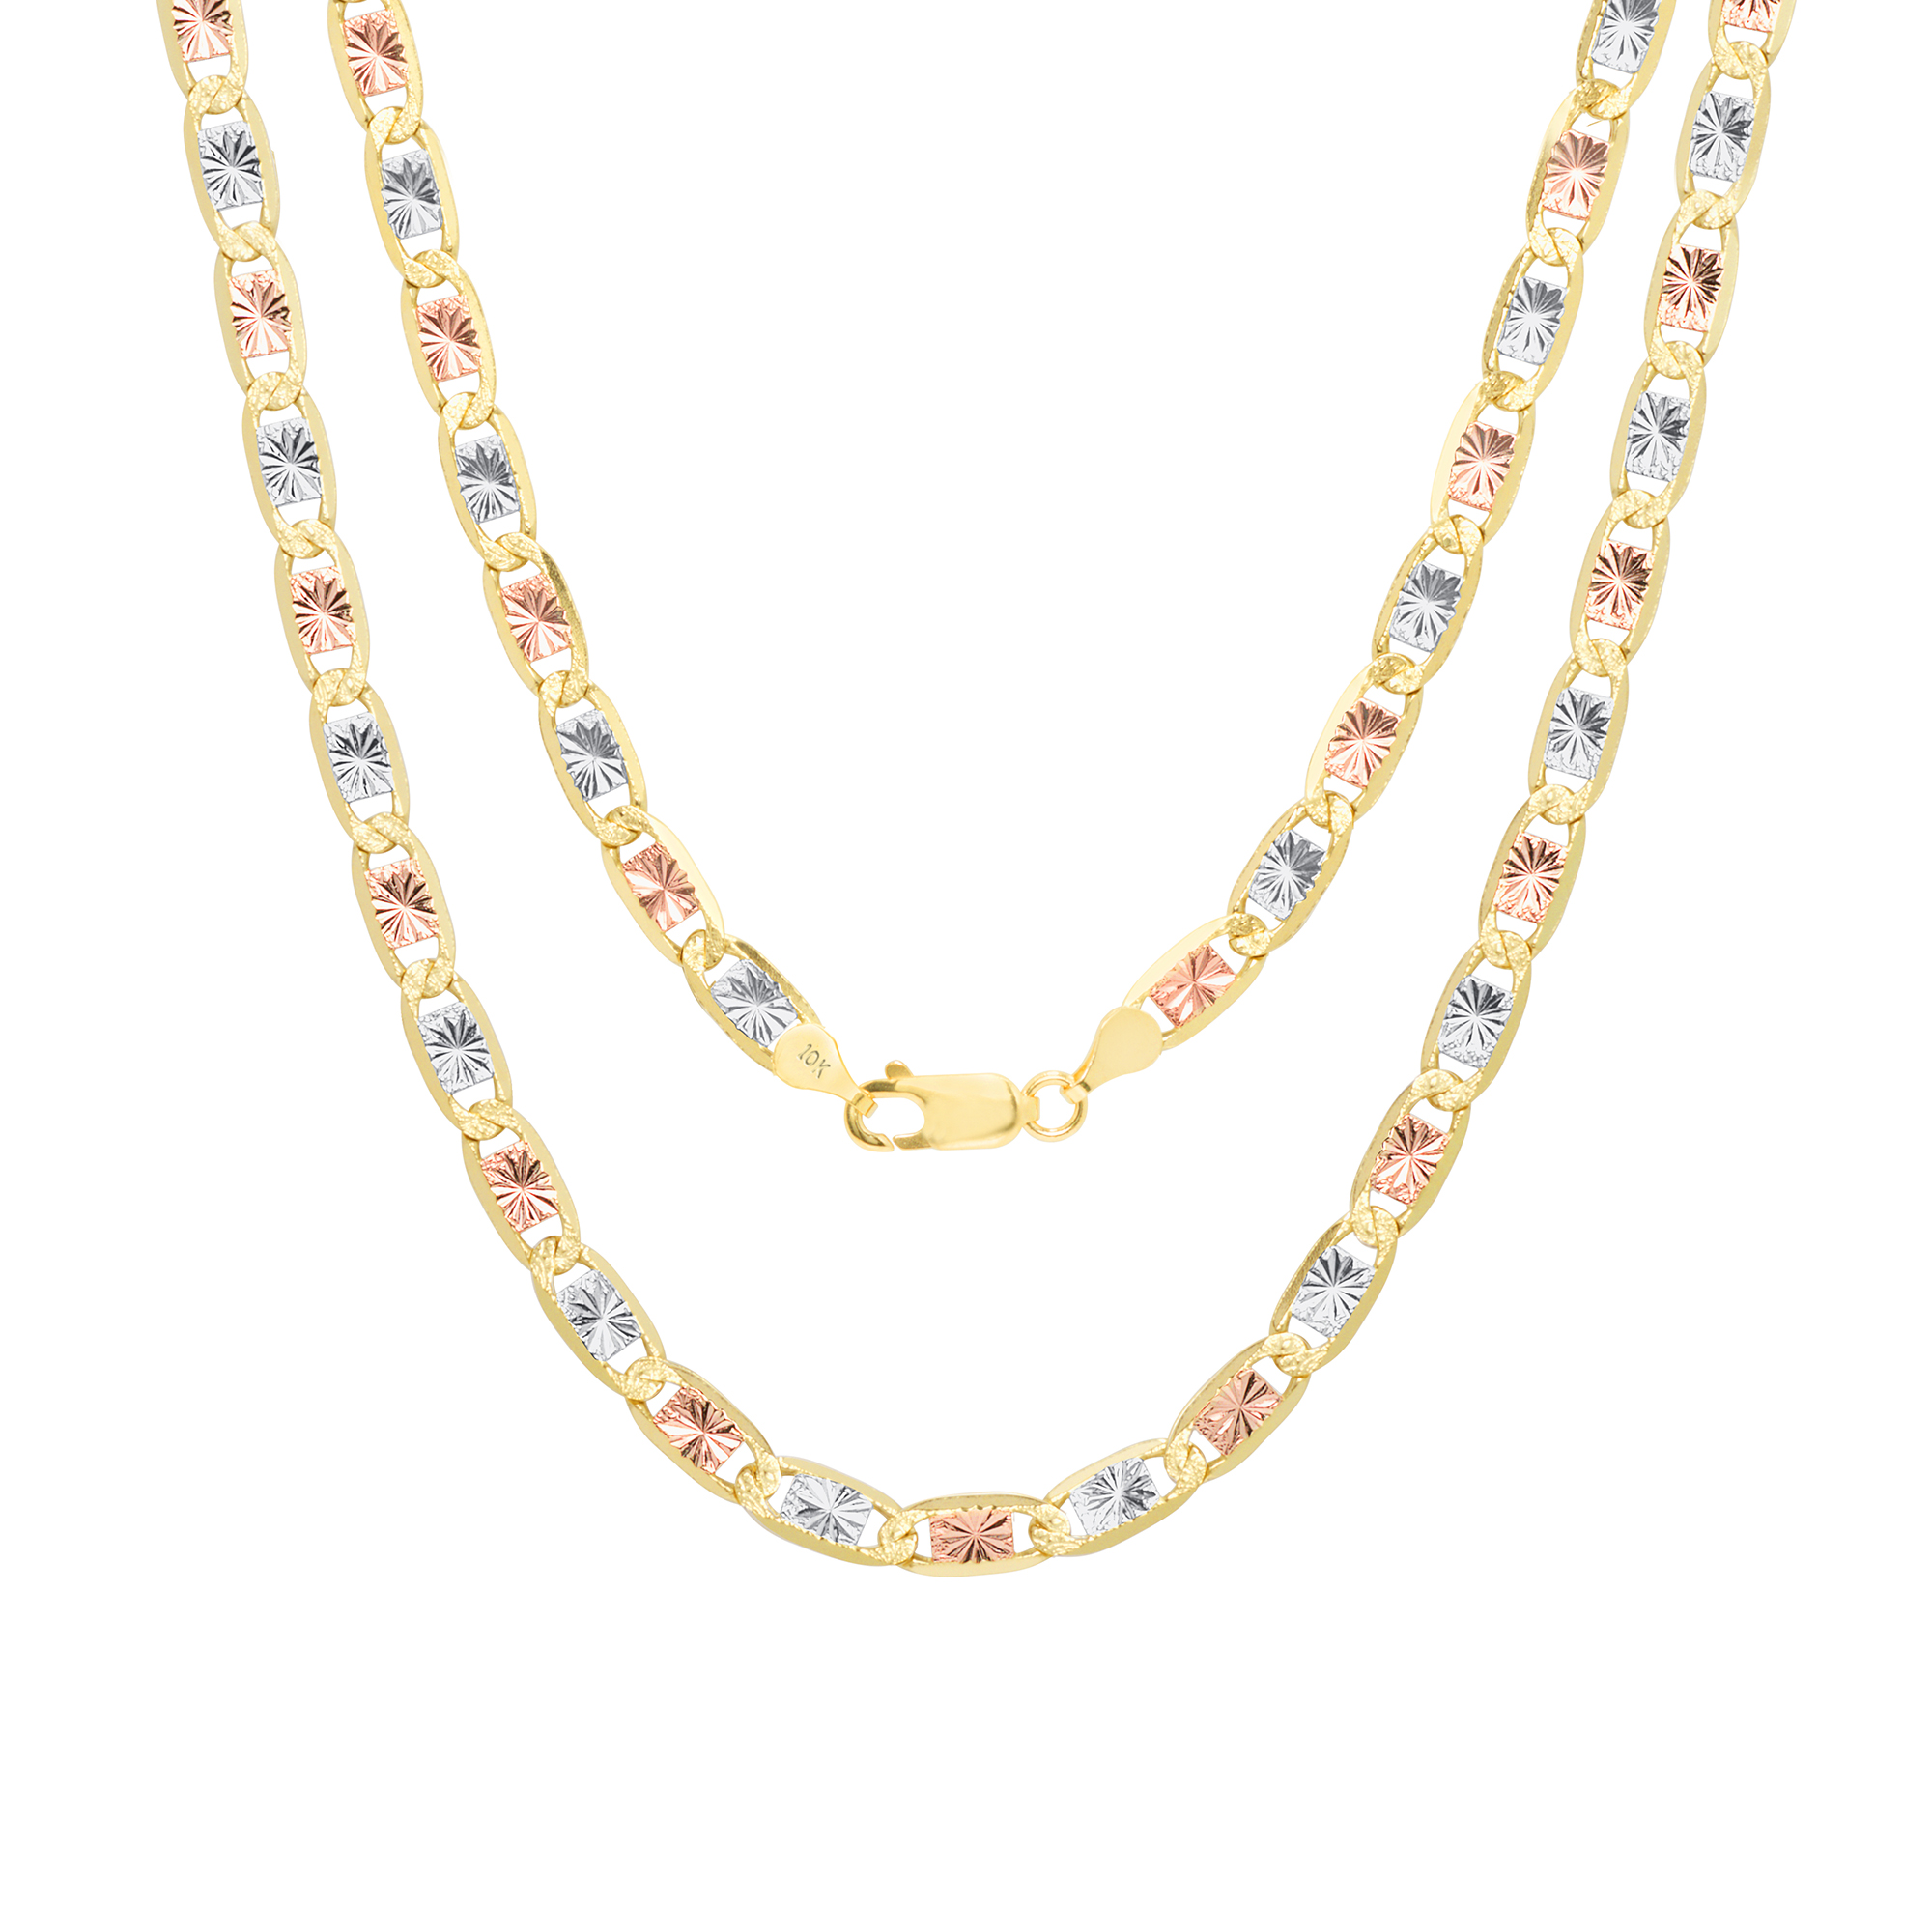 FB Jewels 14K Yellow Gold Valentino Star Diamond-Cut Chain Necklace With Lobster Claw Clasp